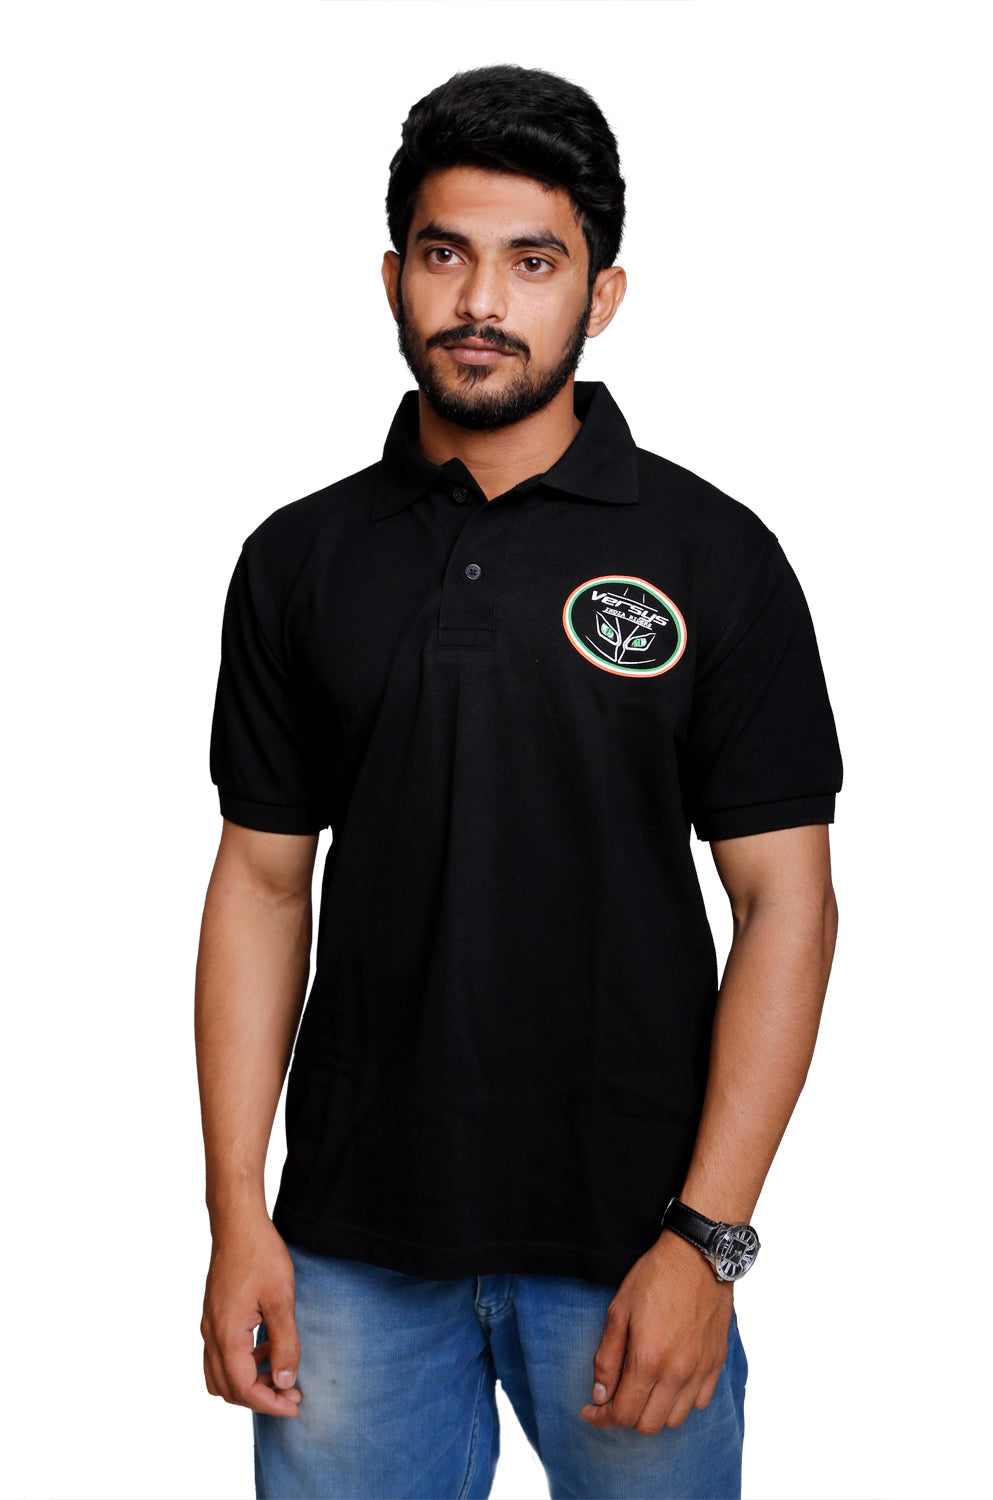 Kawasaki Versys India Rider's Club T-Shirt - ChrisCross.in